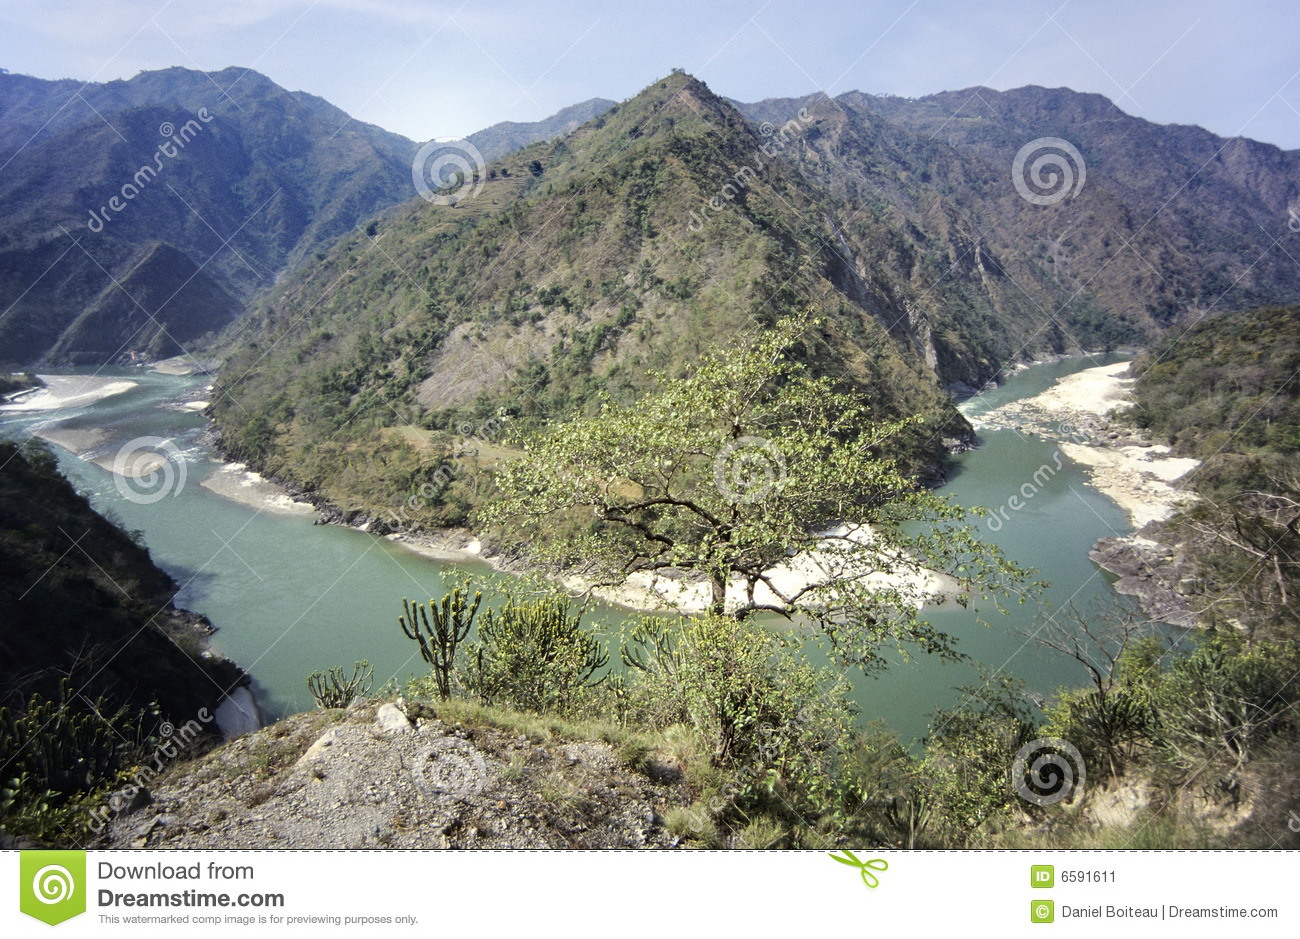 High valley ganges river stock image. Image of green ...